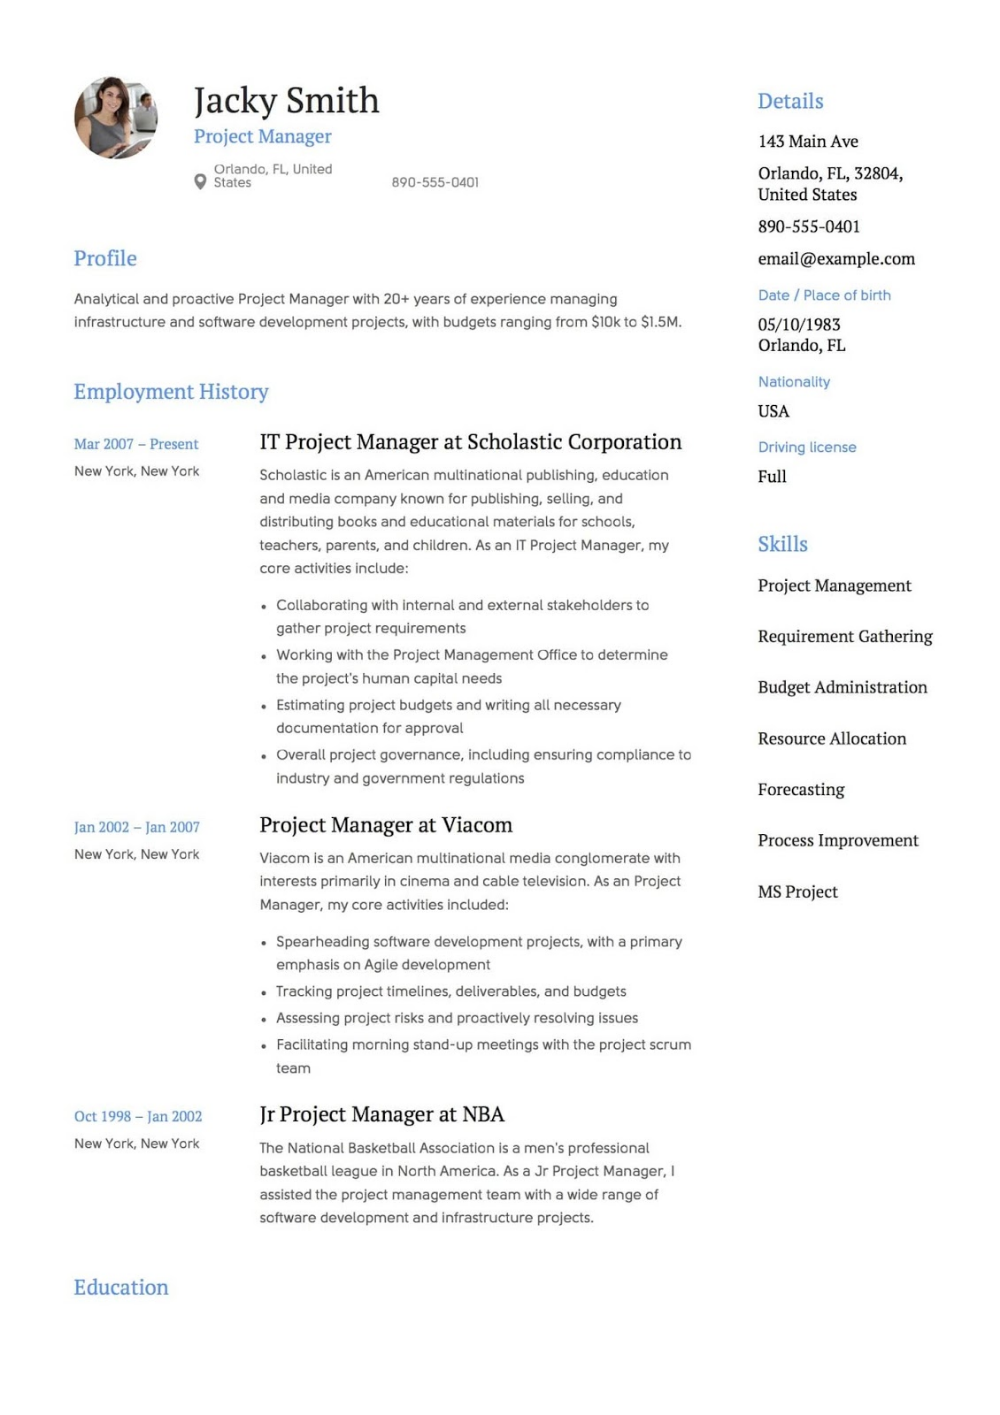 Project Manager Resume Templates 2019 2020 → CLICK MORE